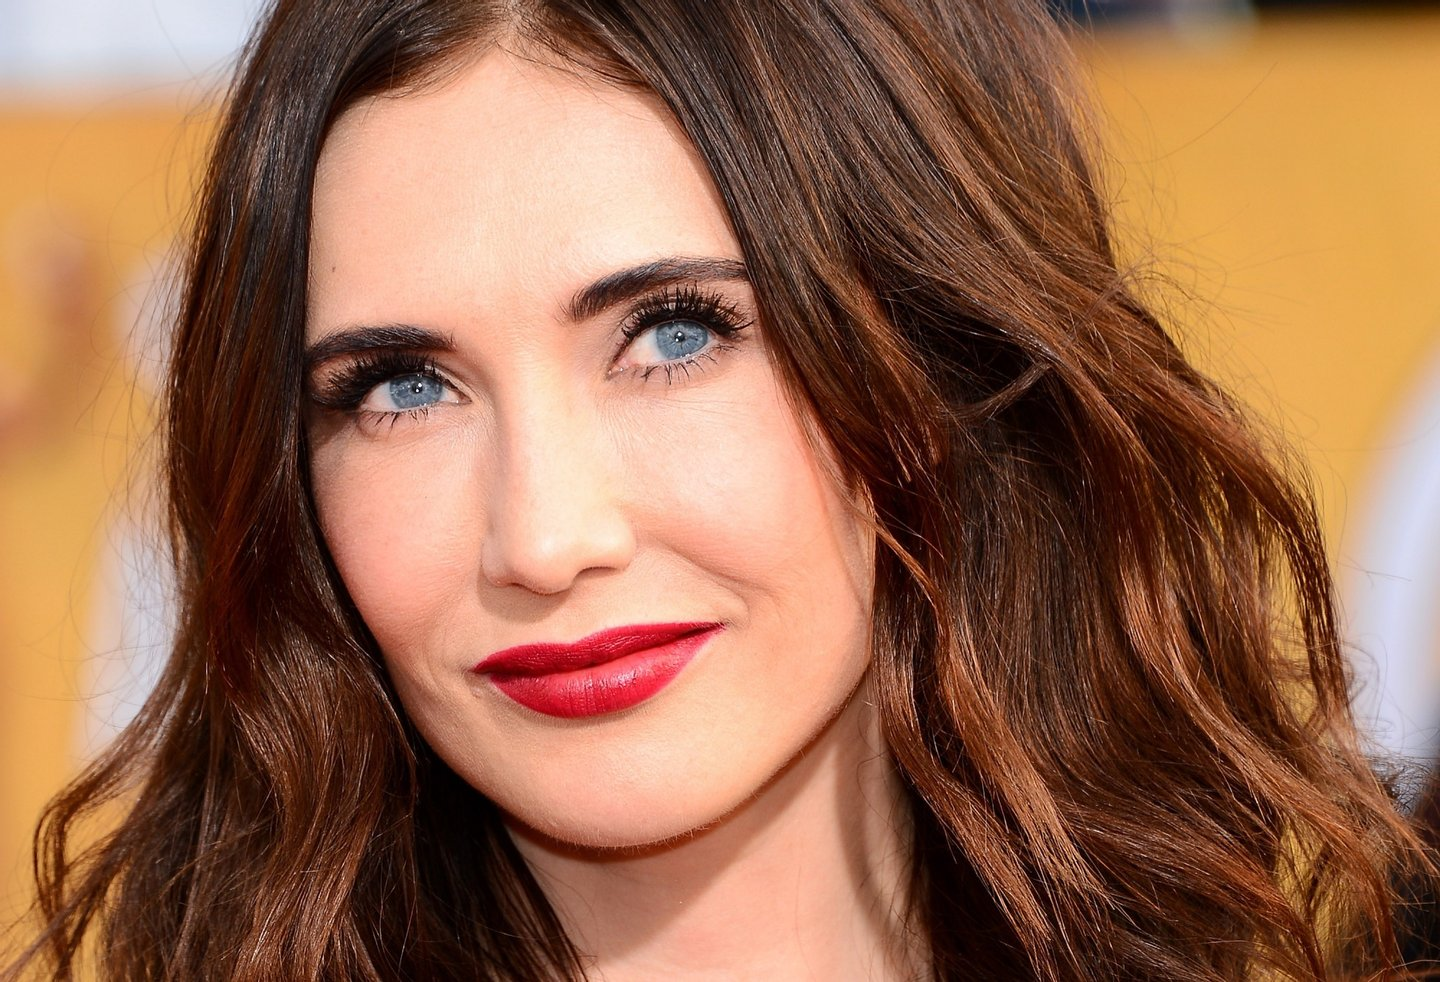 LOS ANGELES, CA - JANUARY 18: Actress Carice Van Houten attends the 20th Annual Screen Actors Guild Awards at The Shrine Auditorium on January 18, 2014 in Los Angeles, California. (Photo by Ethan Miller/Getty Images)